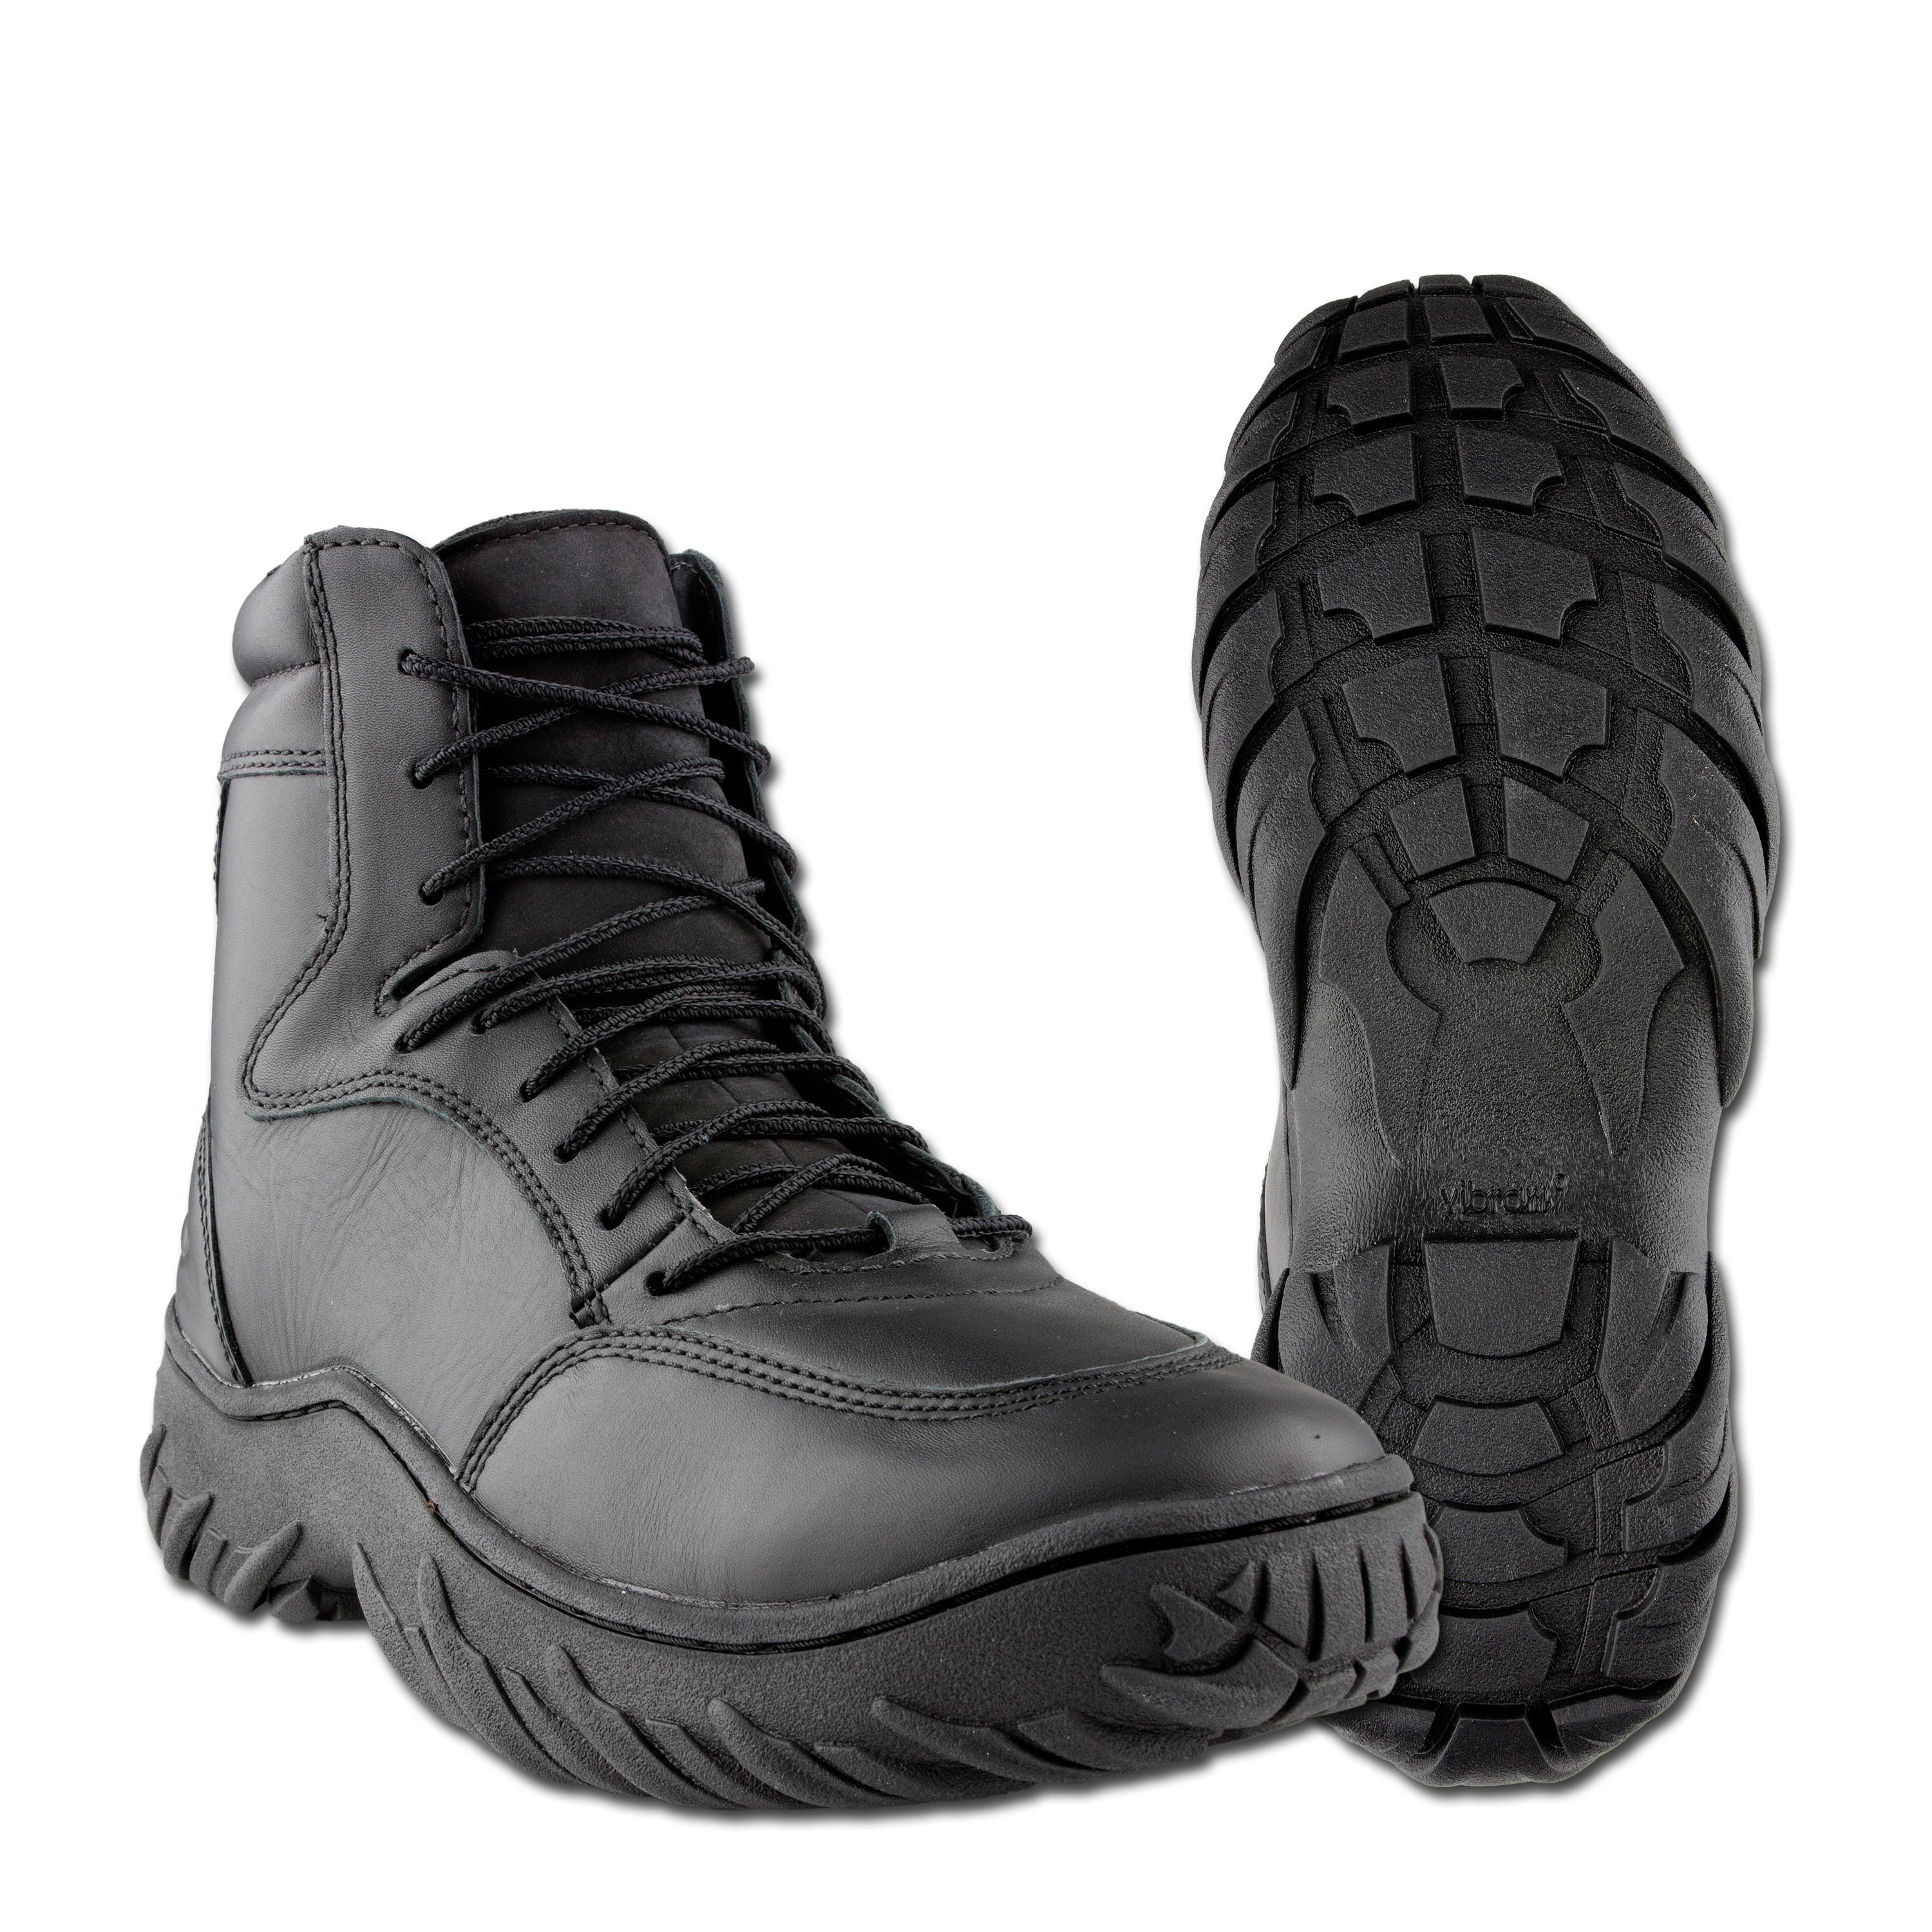 Stiefel Oakley S.I. Assault Boot